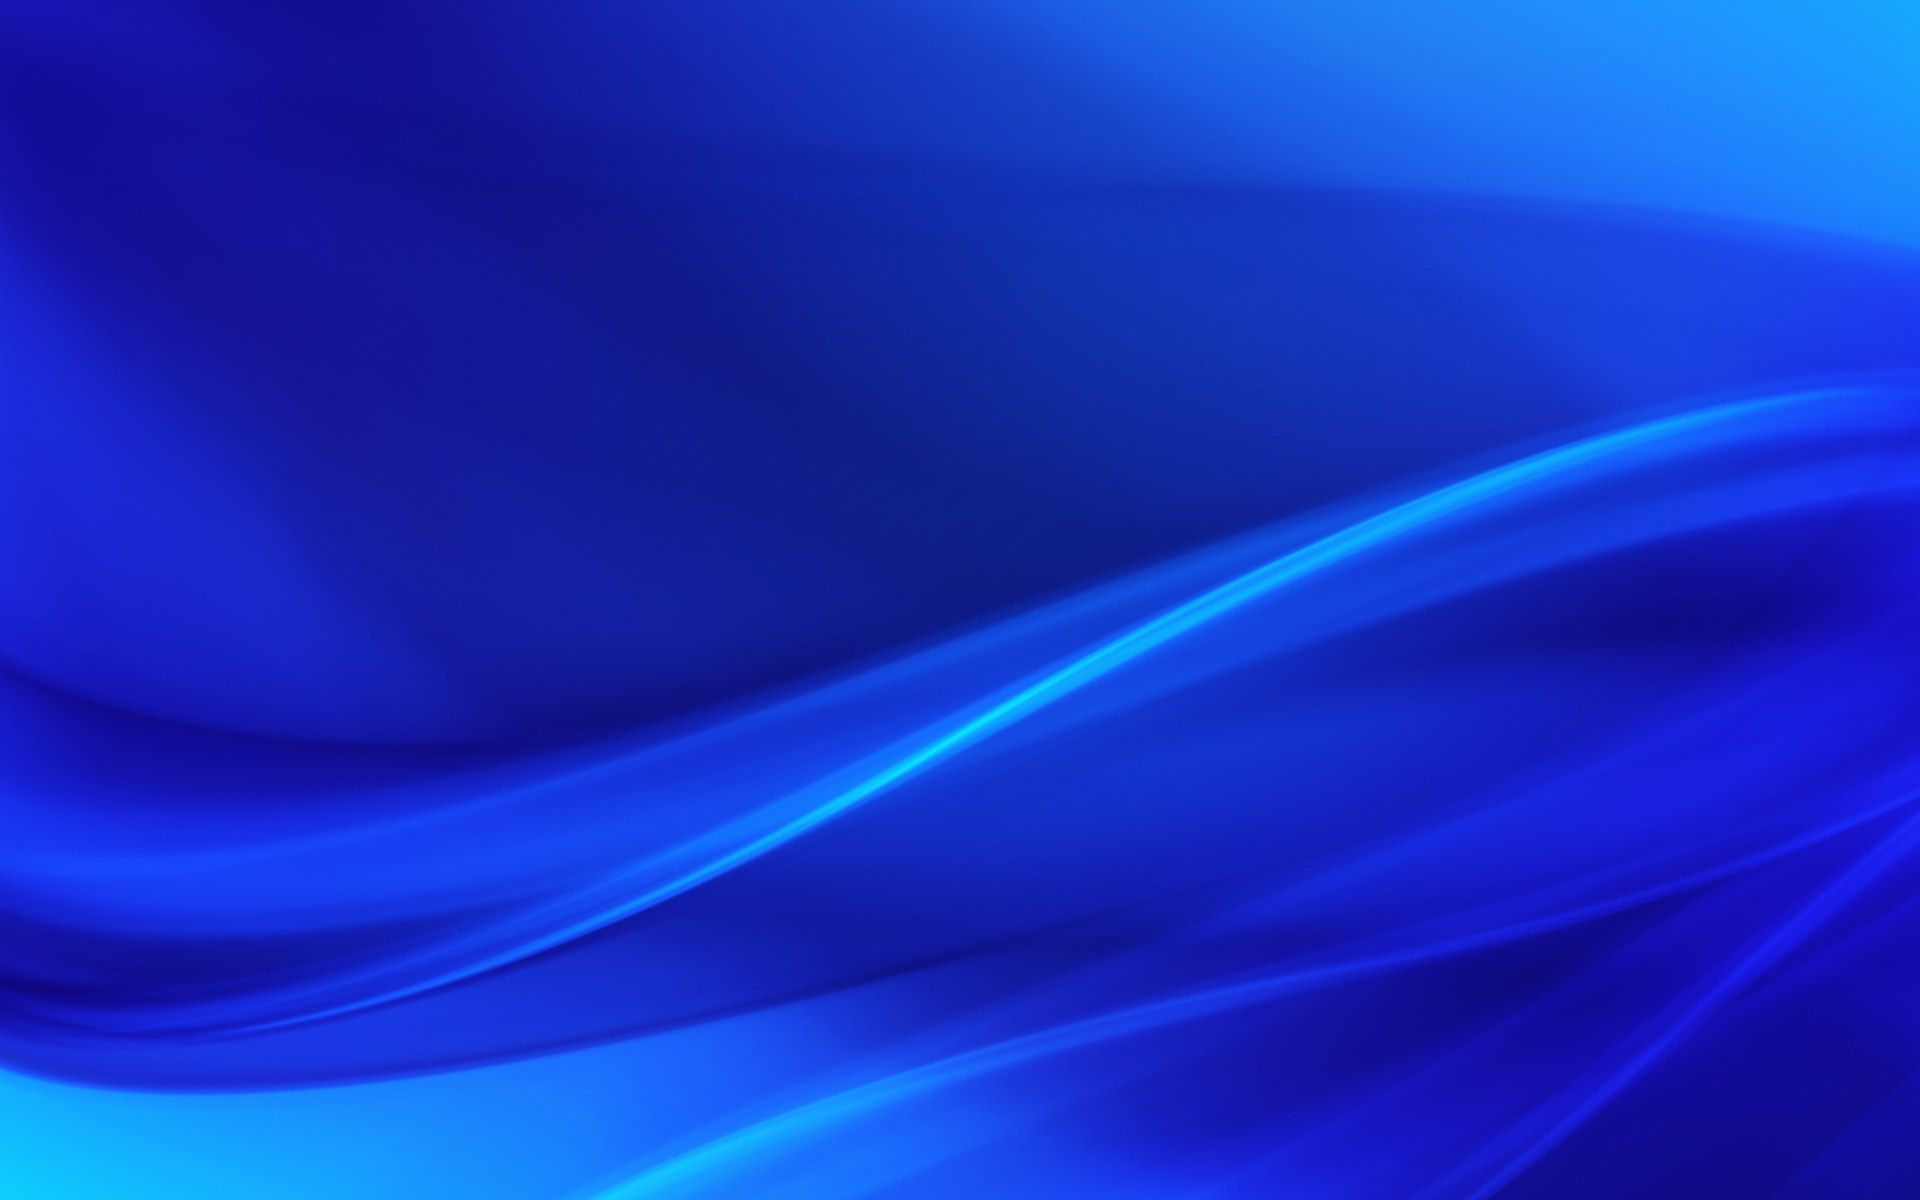 HD Wallpapers Abstract Blue Backgrounds 34